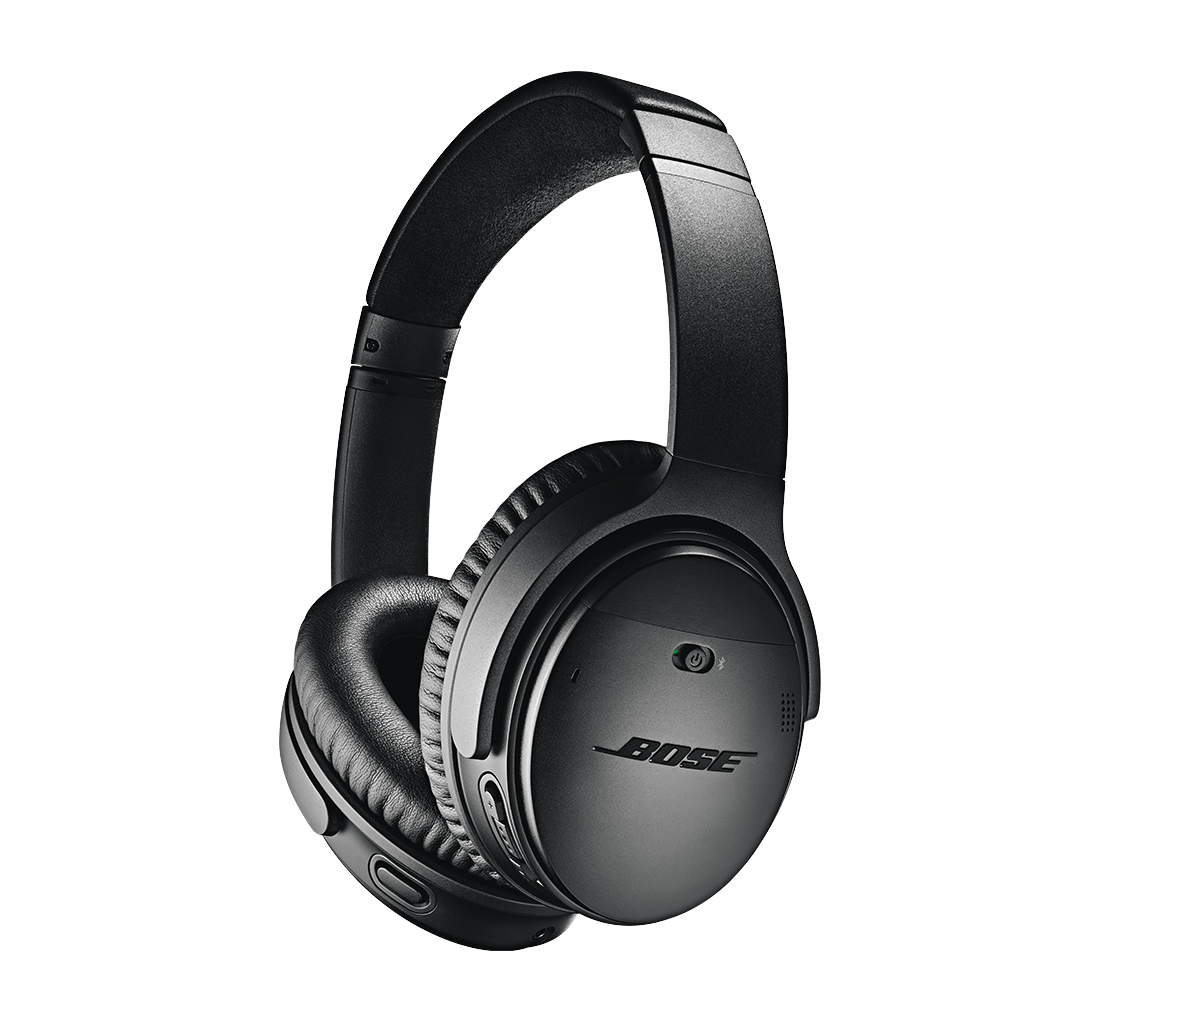 Bose QuietComfort 35 wireless headphones II with Google Assistant by Bose